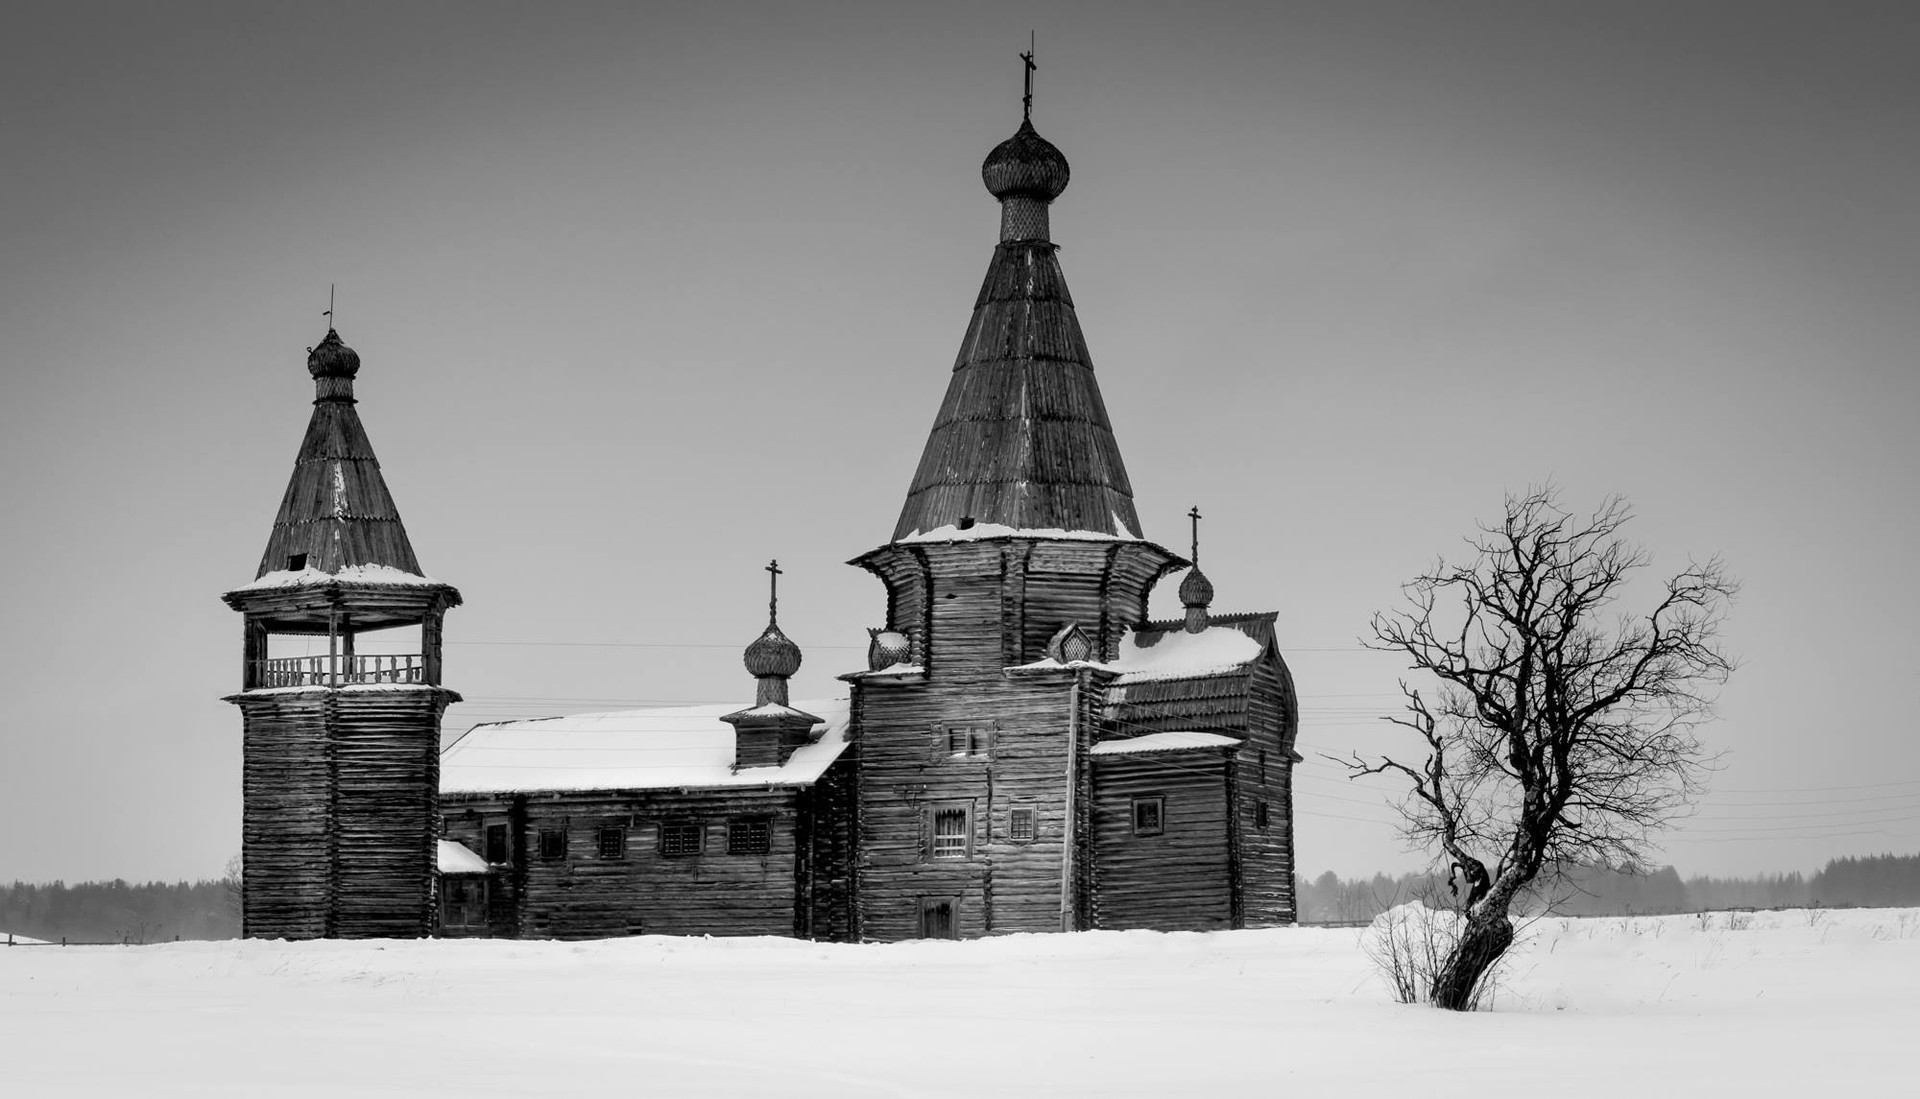 John Chrysostom Church, Arkhangelsk Region, 17th century